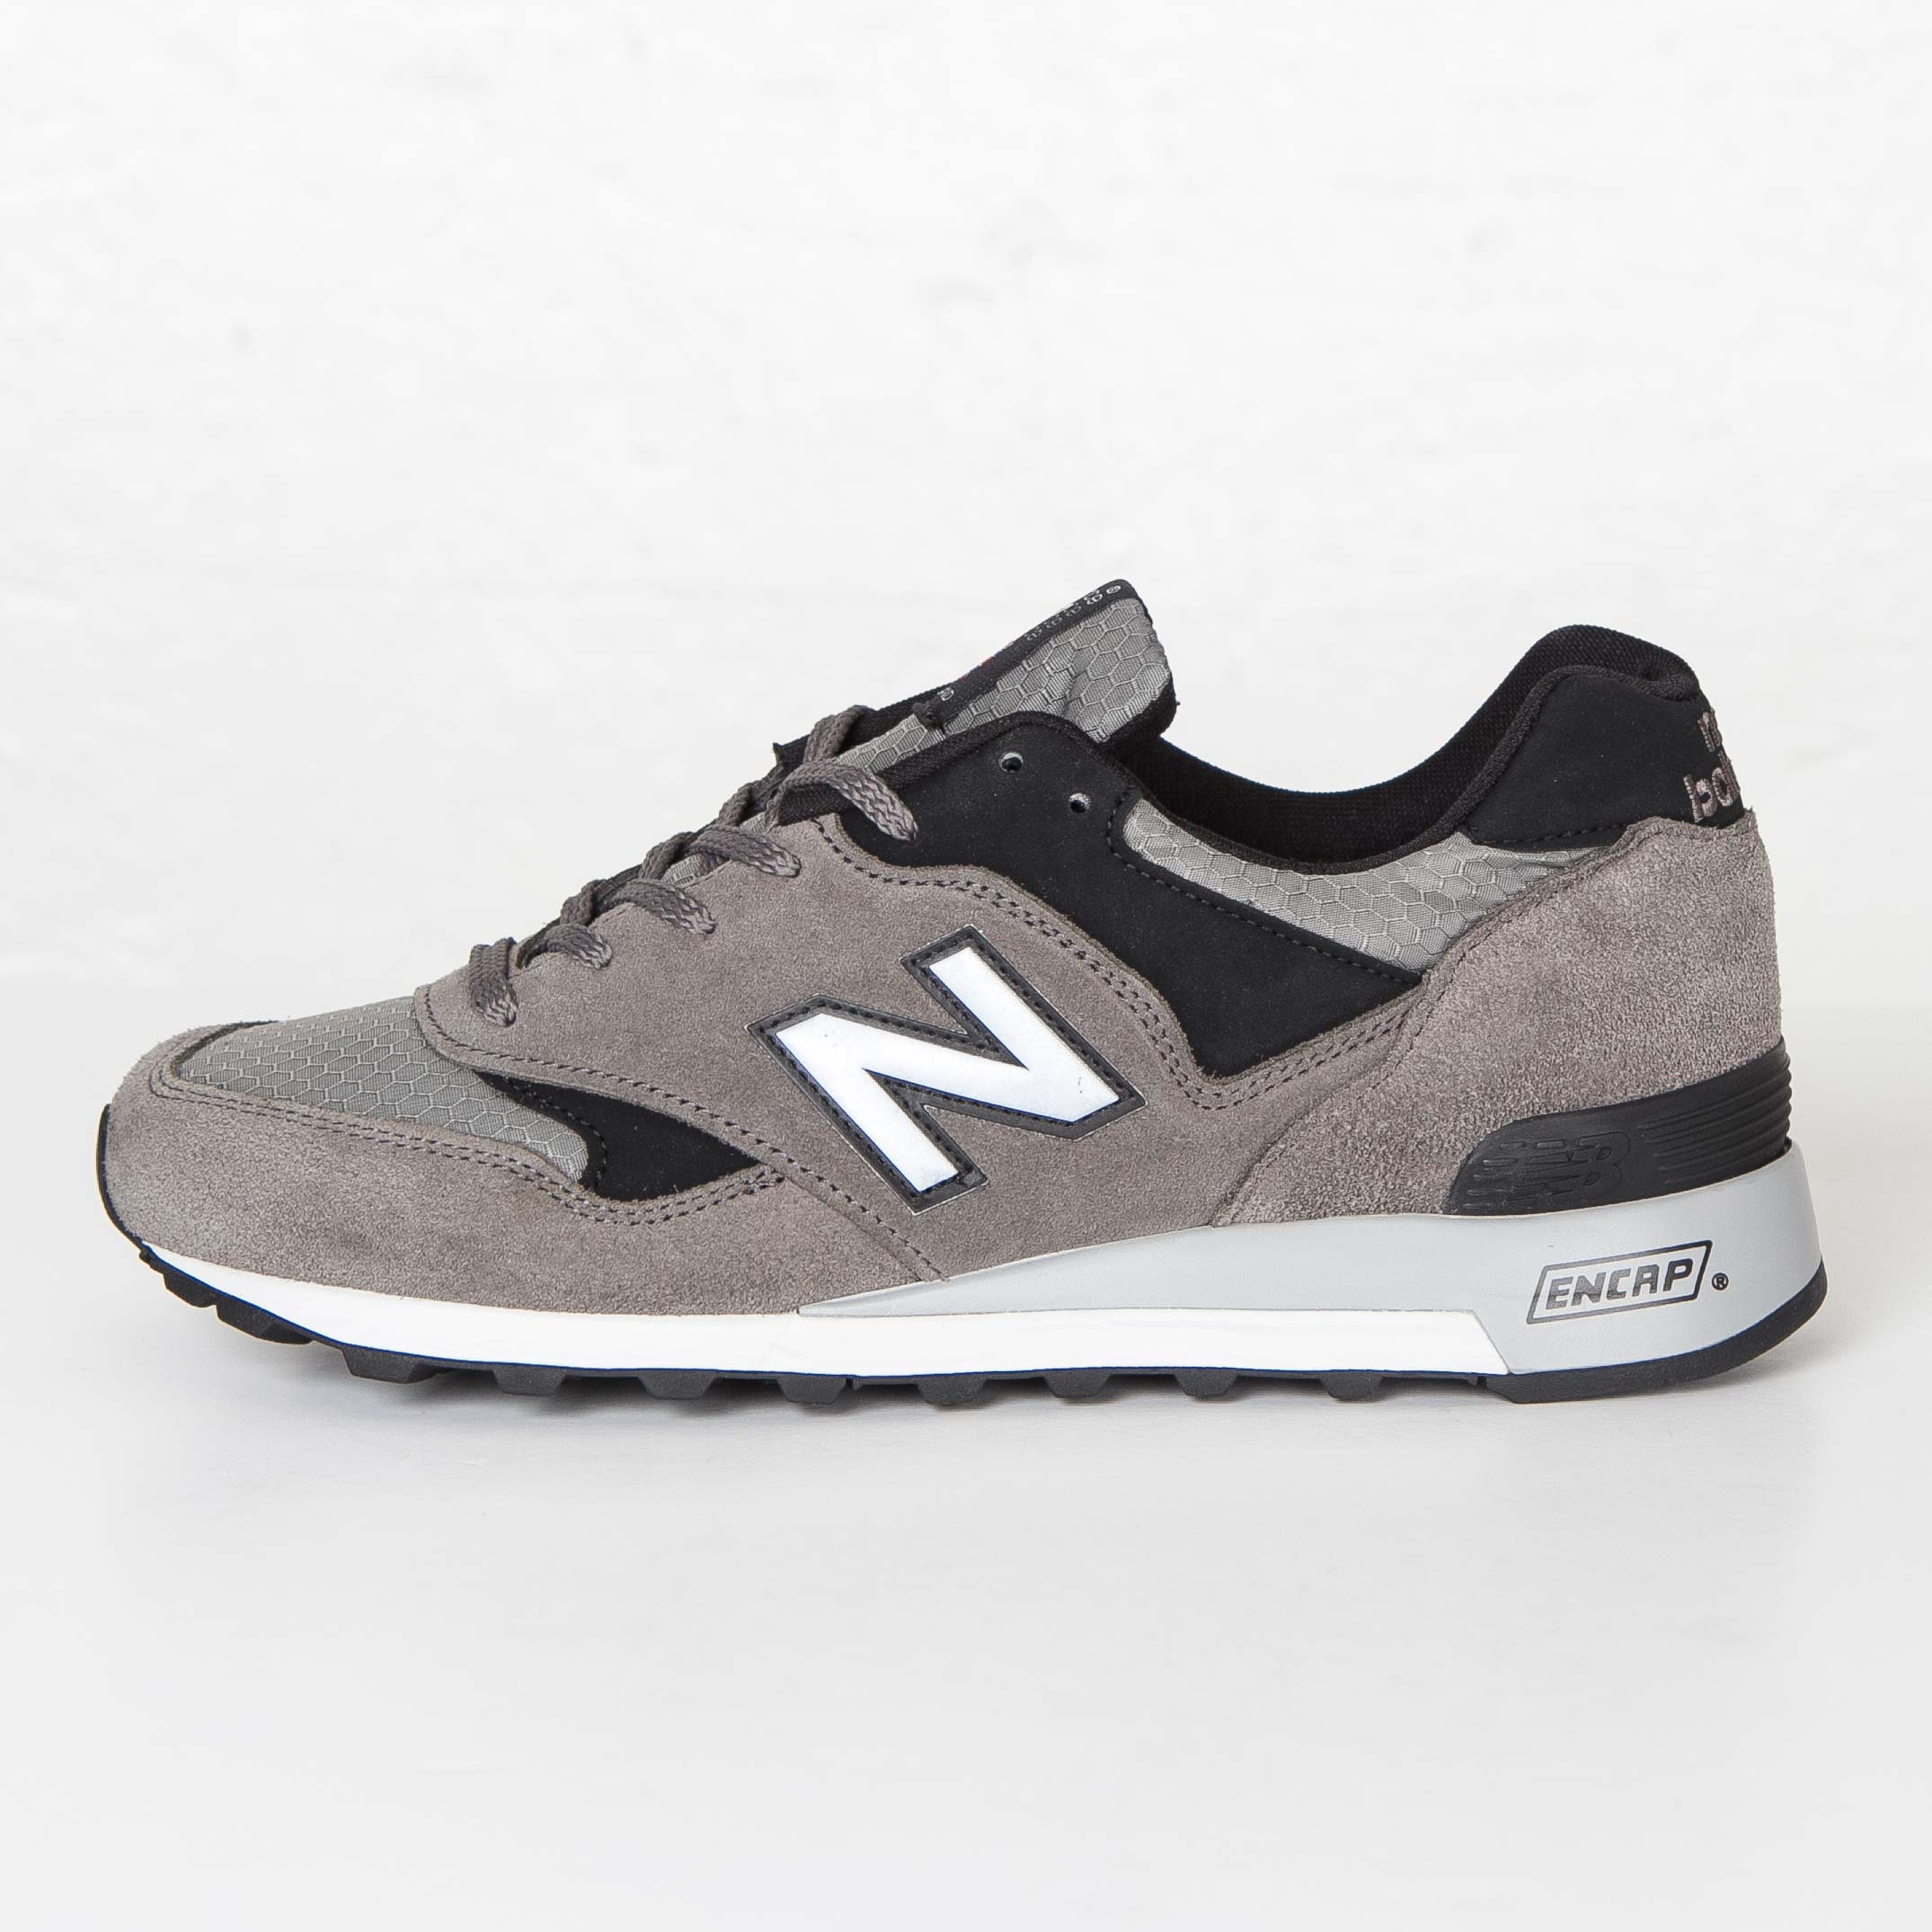 check out fb5cf 38321 New Balance M577 - M577gl - Sneakersnstuff   sneakers   streetwear online  since 1999